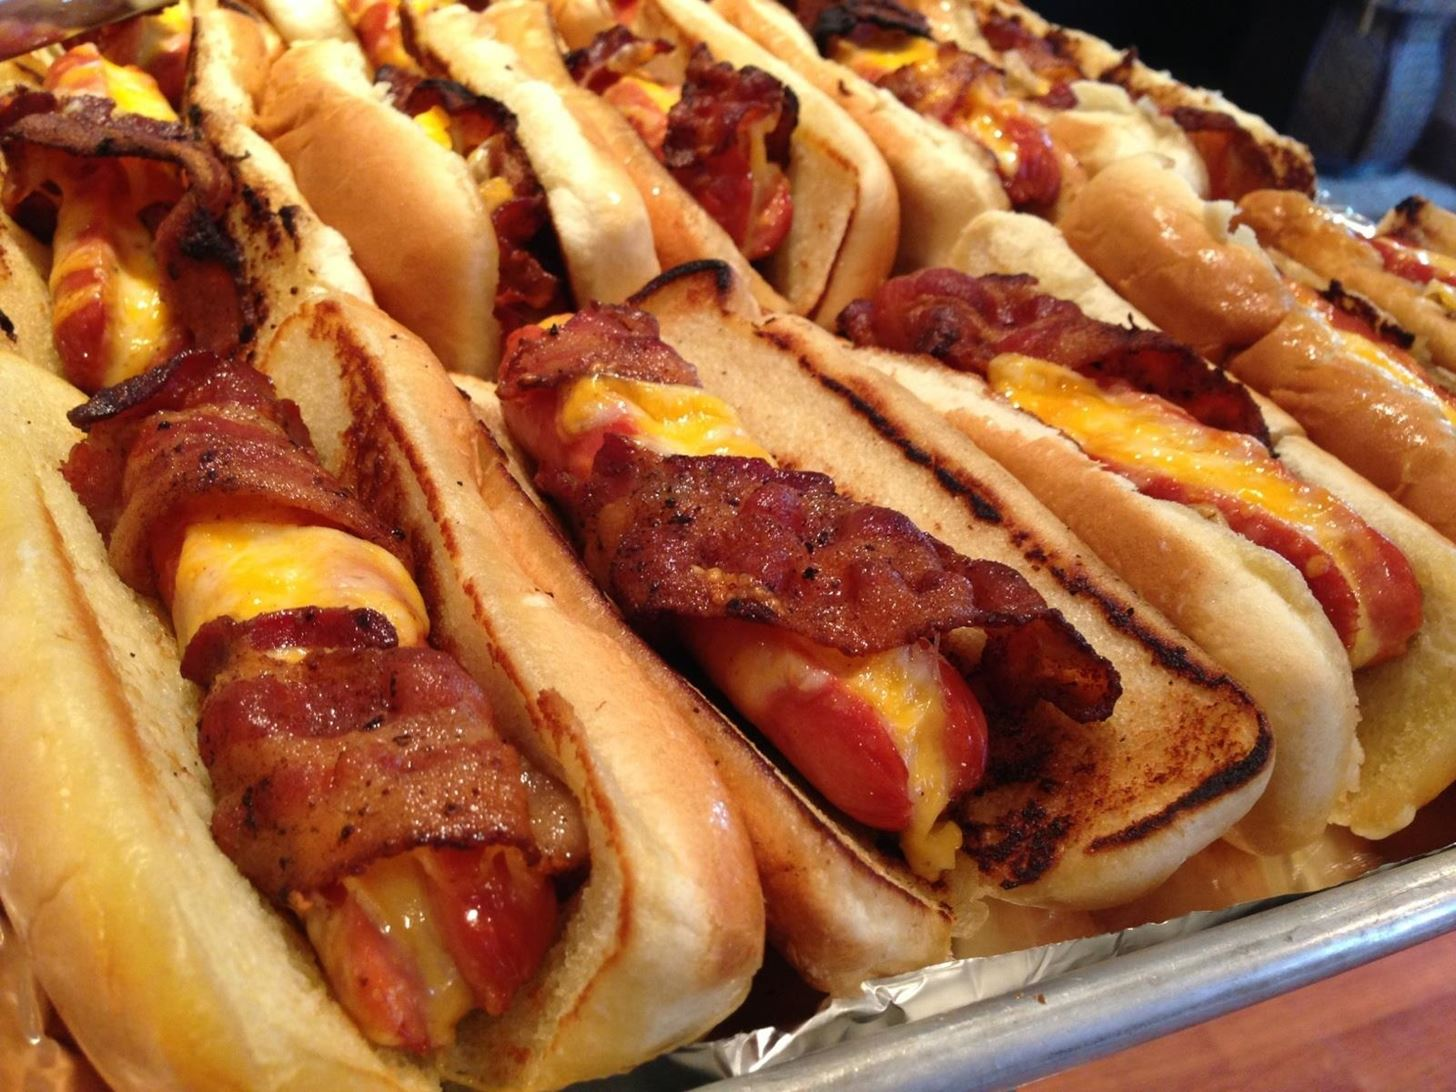 10 Extreme Hot Dog Hacks That Make Ketchup & Mustard Obsolete